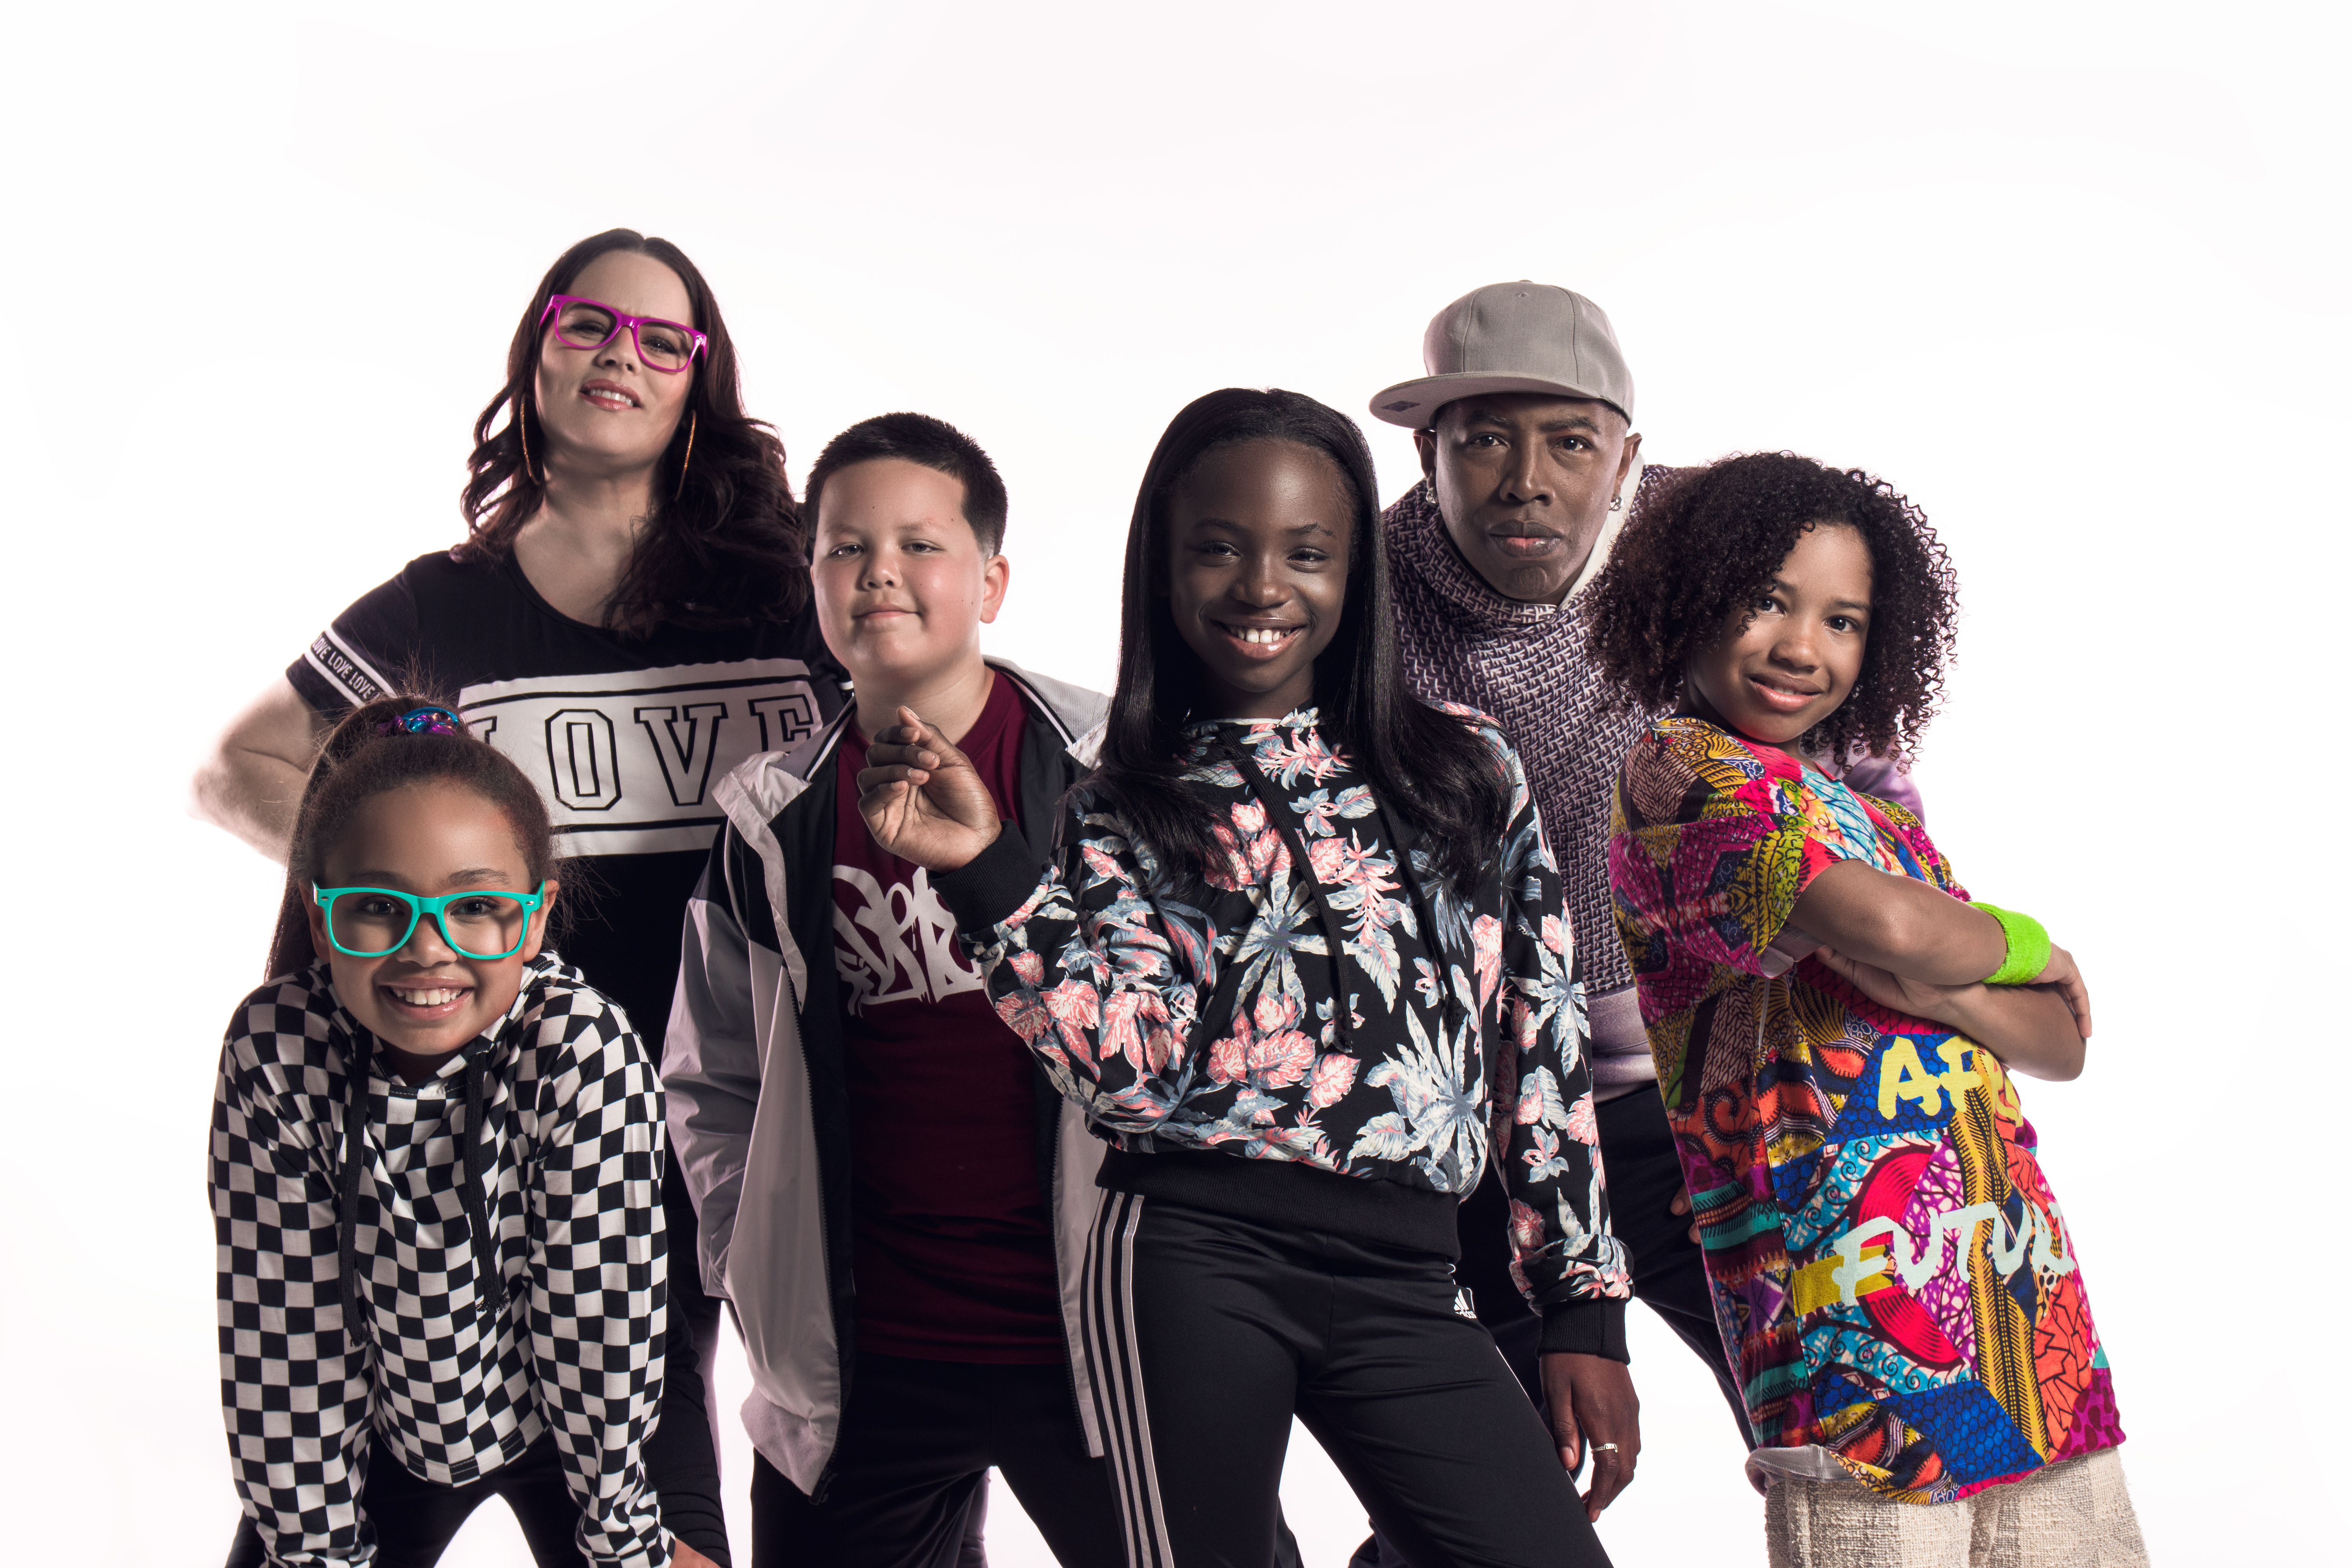 Members of the Alphabet Rockers pose in this photo.